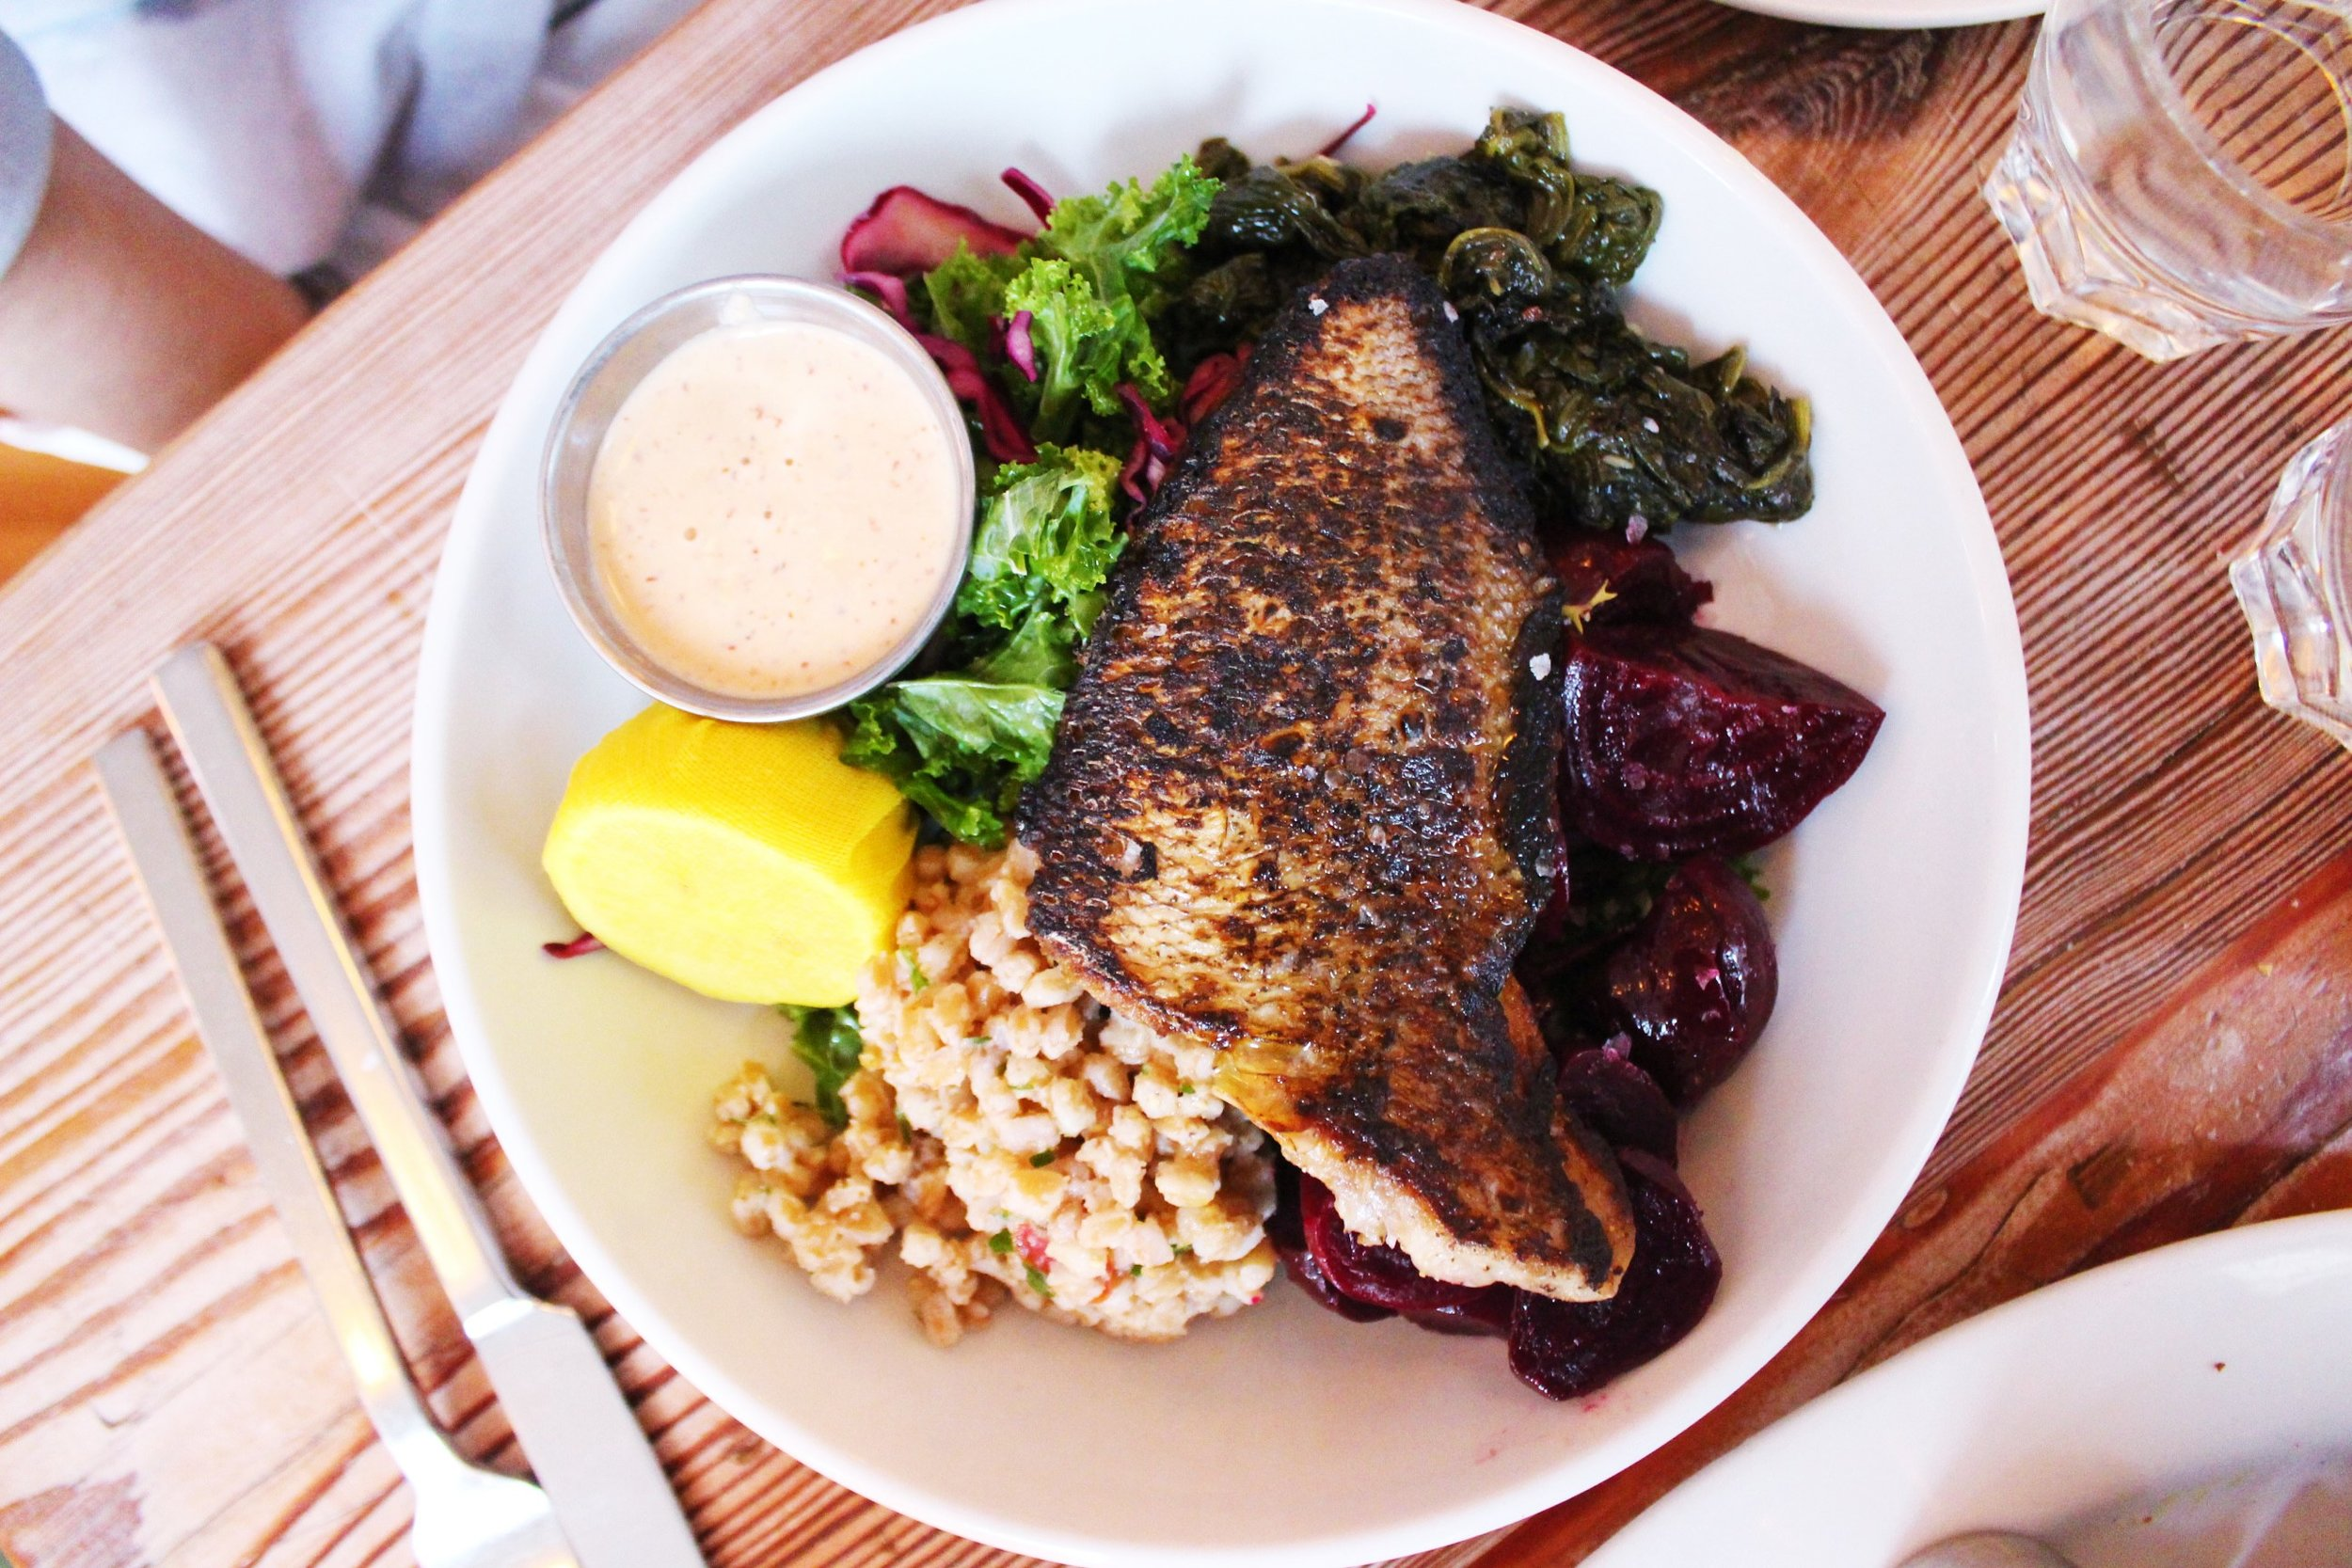 Porgy with Harissa Cashew Sauce with three sides (Sauteed Spinach with Garlic, Farro with Olives & Cherry Tomatoes, Roasted & Pickled Beets)